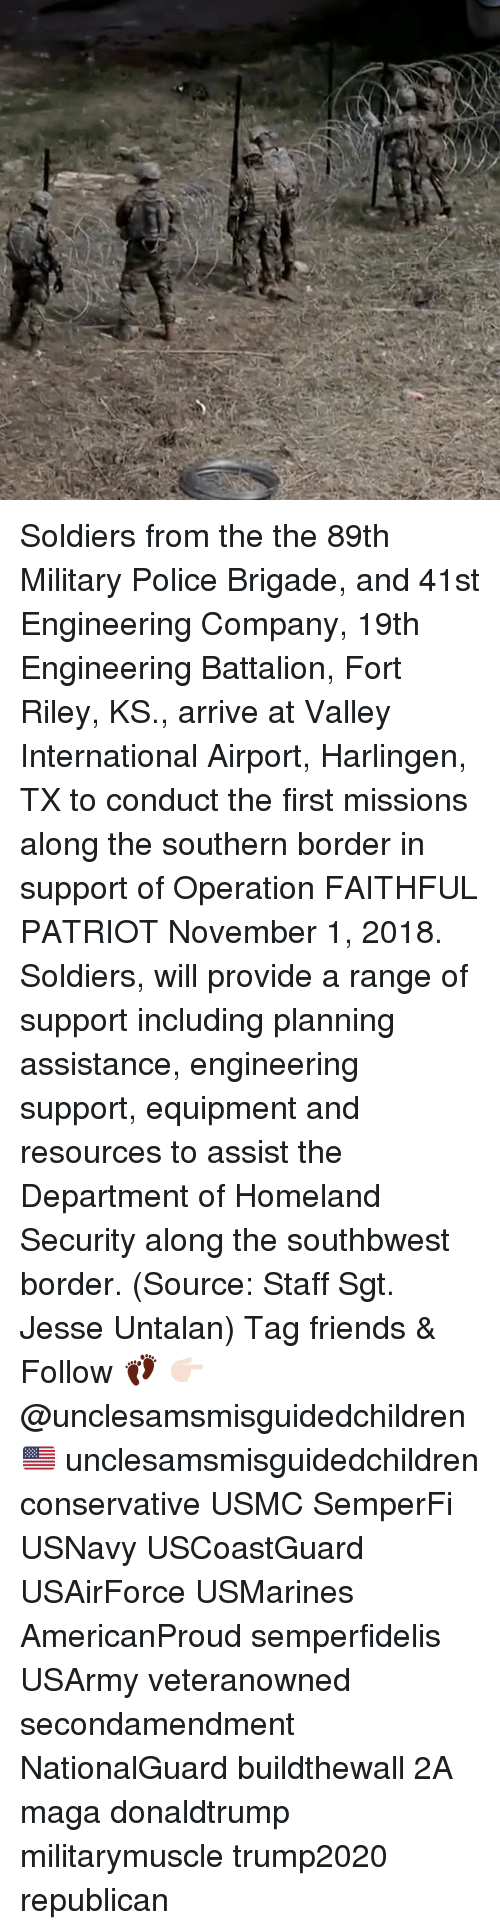 Homeland: Soldiers from the the 89th Military Police Brigade, and 41st Engineering Company, 19th Engineering Battalion, Fort Riley, KS., arrive at Valley International Airport, Harlingen, TX to conduct the first missions along the southern border in support of Operation FAITHFUL PATRIOT November 1, 2018. Soldiers, will provide a range of support including planning assistance, engineering support, equipment and resources to assist the Department of Homeland Security along the southbwest border. (Source: Staff Sgt. Jesse Untalan) Tag friends & Follow 👣 👉🏻 @unclesamsmisguidedchildren 🇺🇸 unclesamsmisguidedchildren conservative USMC SemperFi USNavy USCoastGuard USAirForce USMarines AmericanProud semperfidelis USArmy veteranowned secondamendment NationalGuard buildthewall 2A maga donaldtrump militarymuscle trump2020 republican